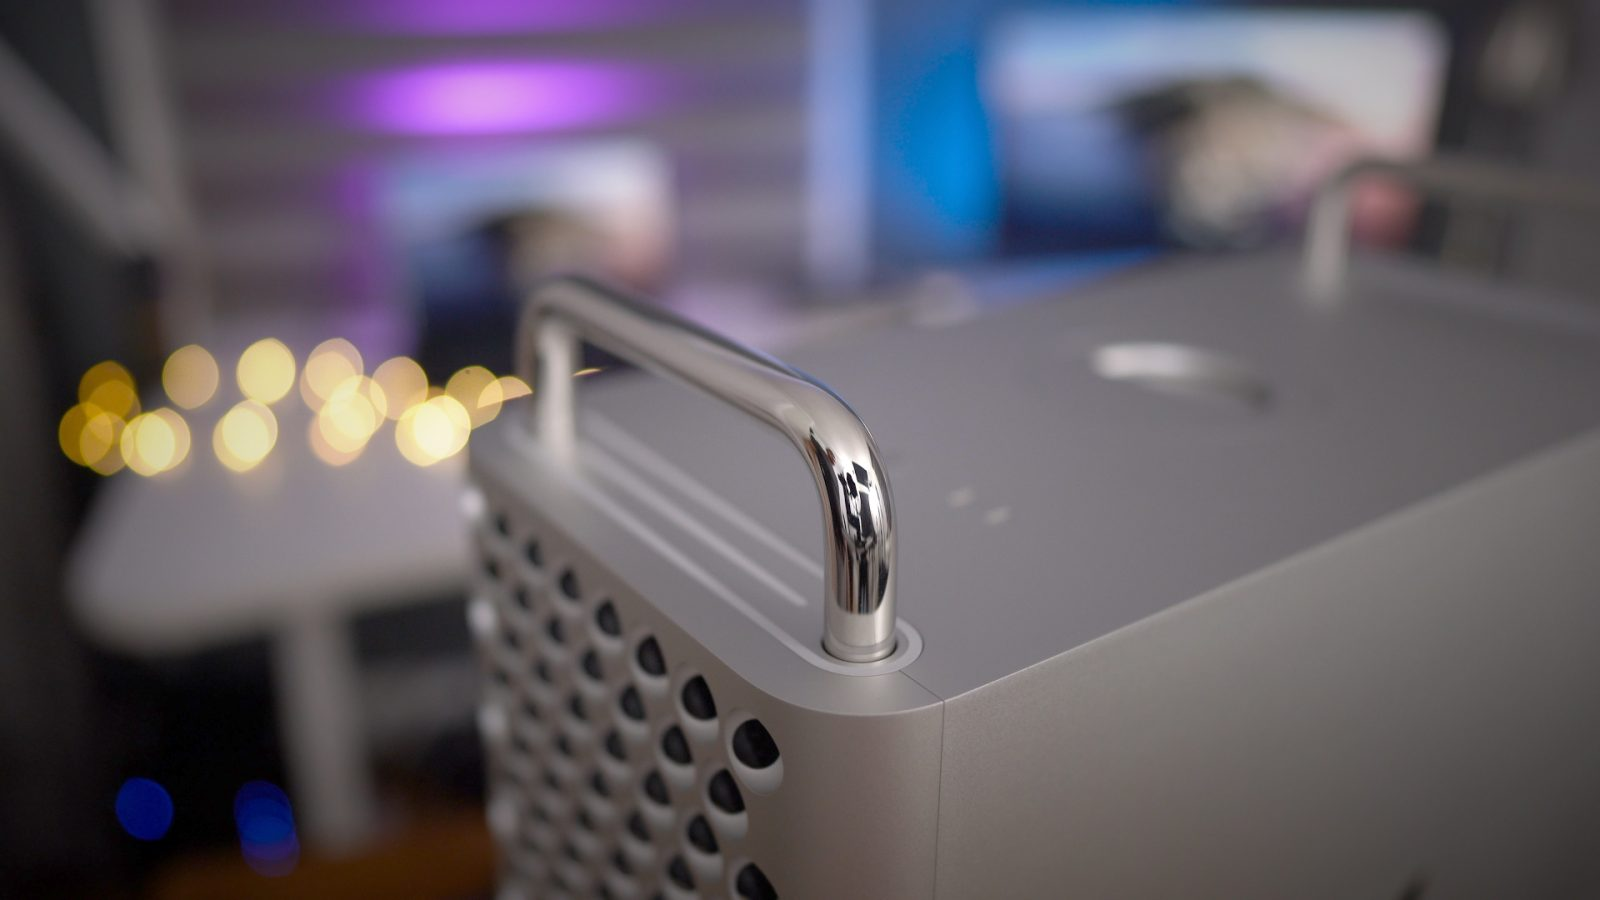 Top 2019 Mac Pro features: plenty of room for growth [Video]